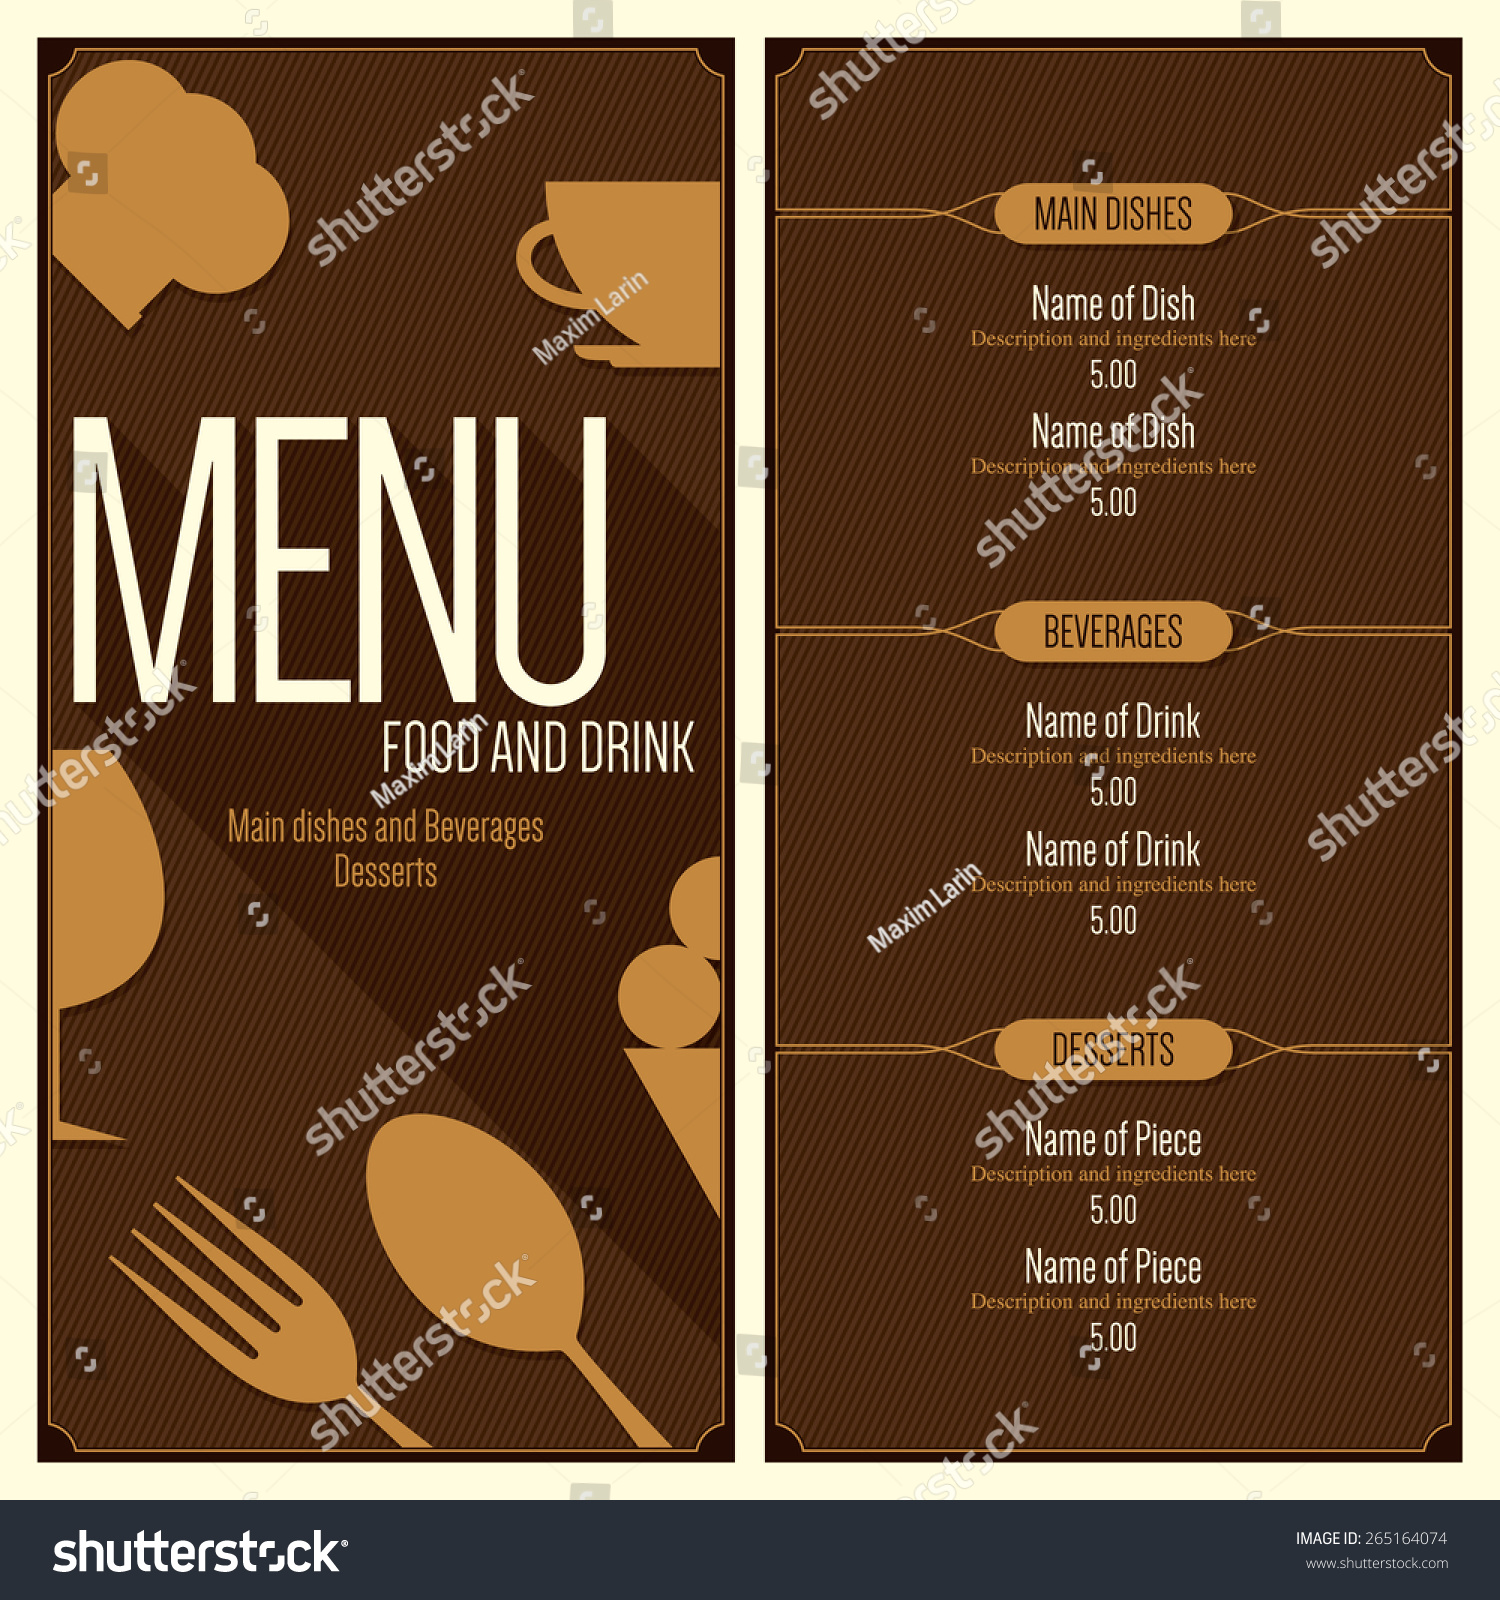 Vector Menu Brochure Template For Cafe, Coffee House, Restaurant,